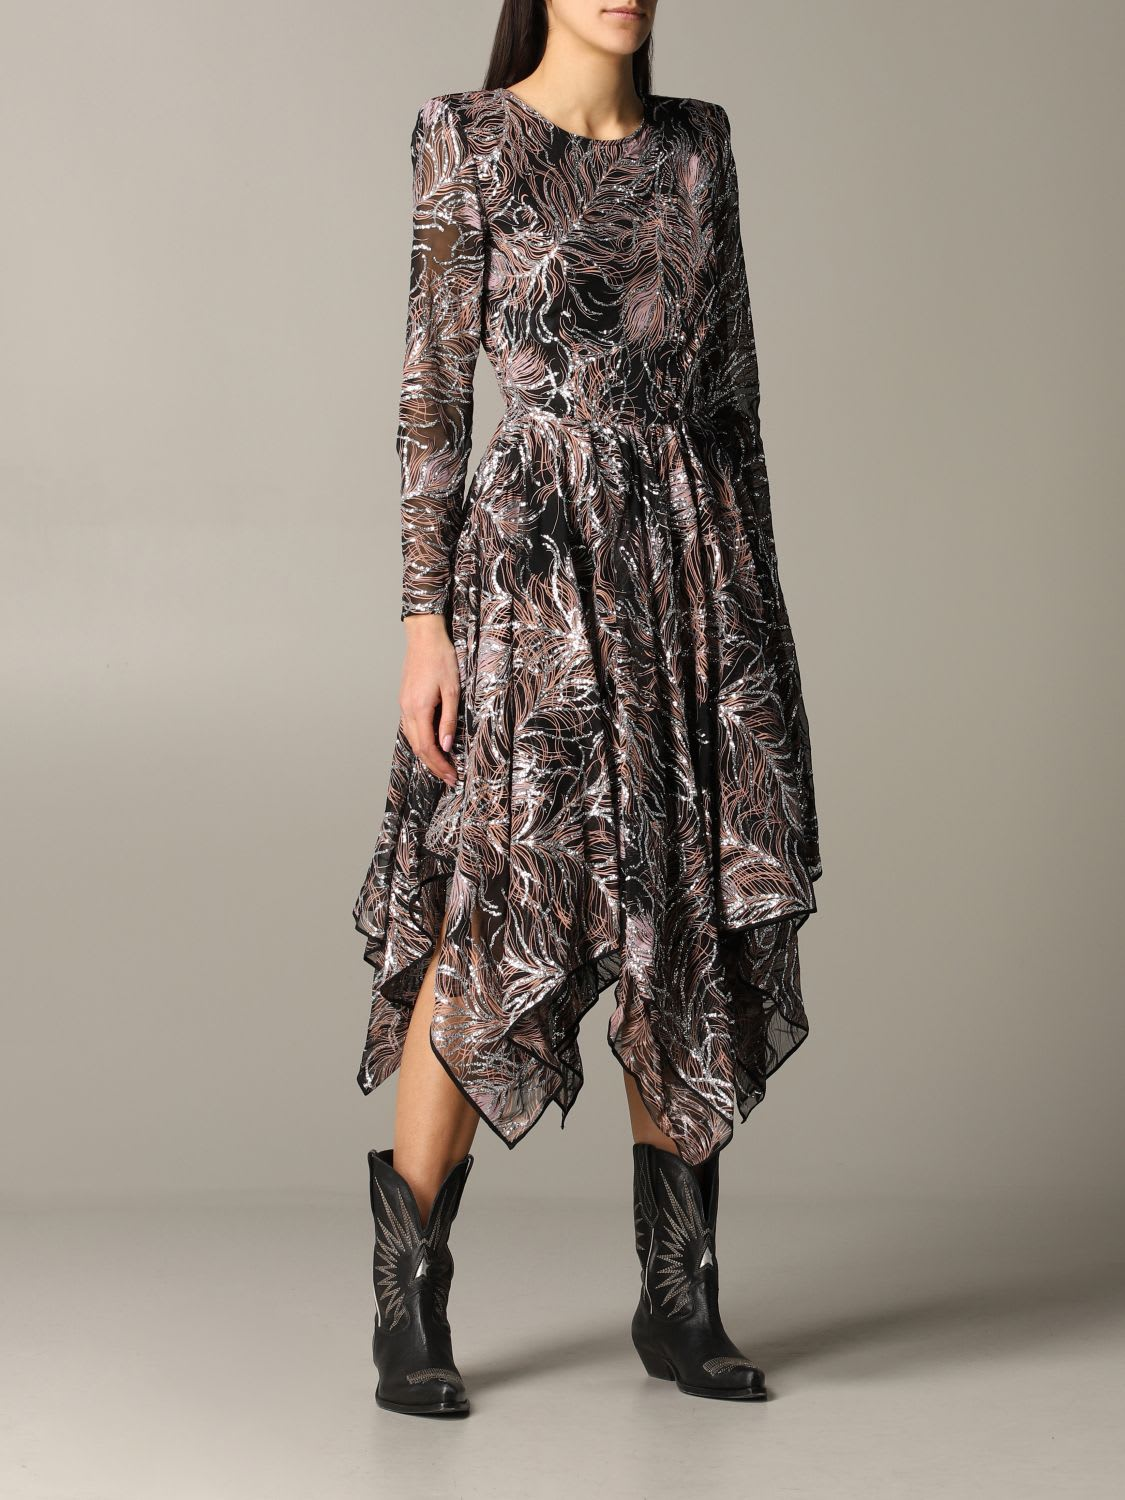 Buy Etro Dress Etro Maxi Dress With Asymmetrical Hem online, shop Etro with free shipping